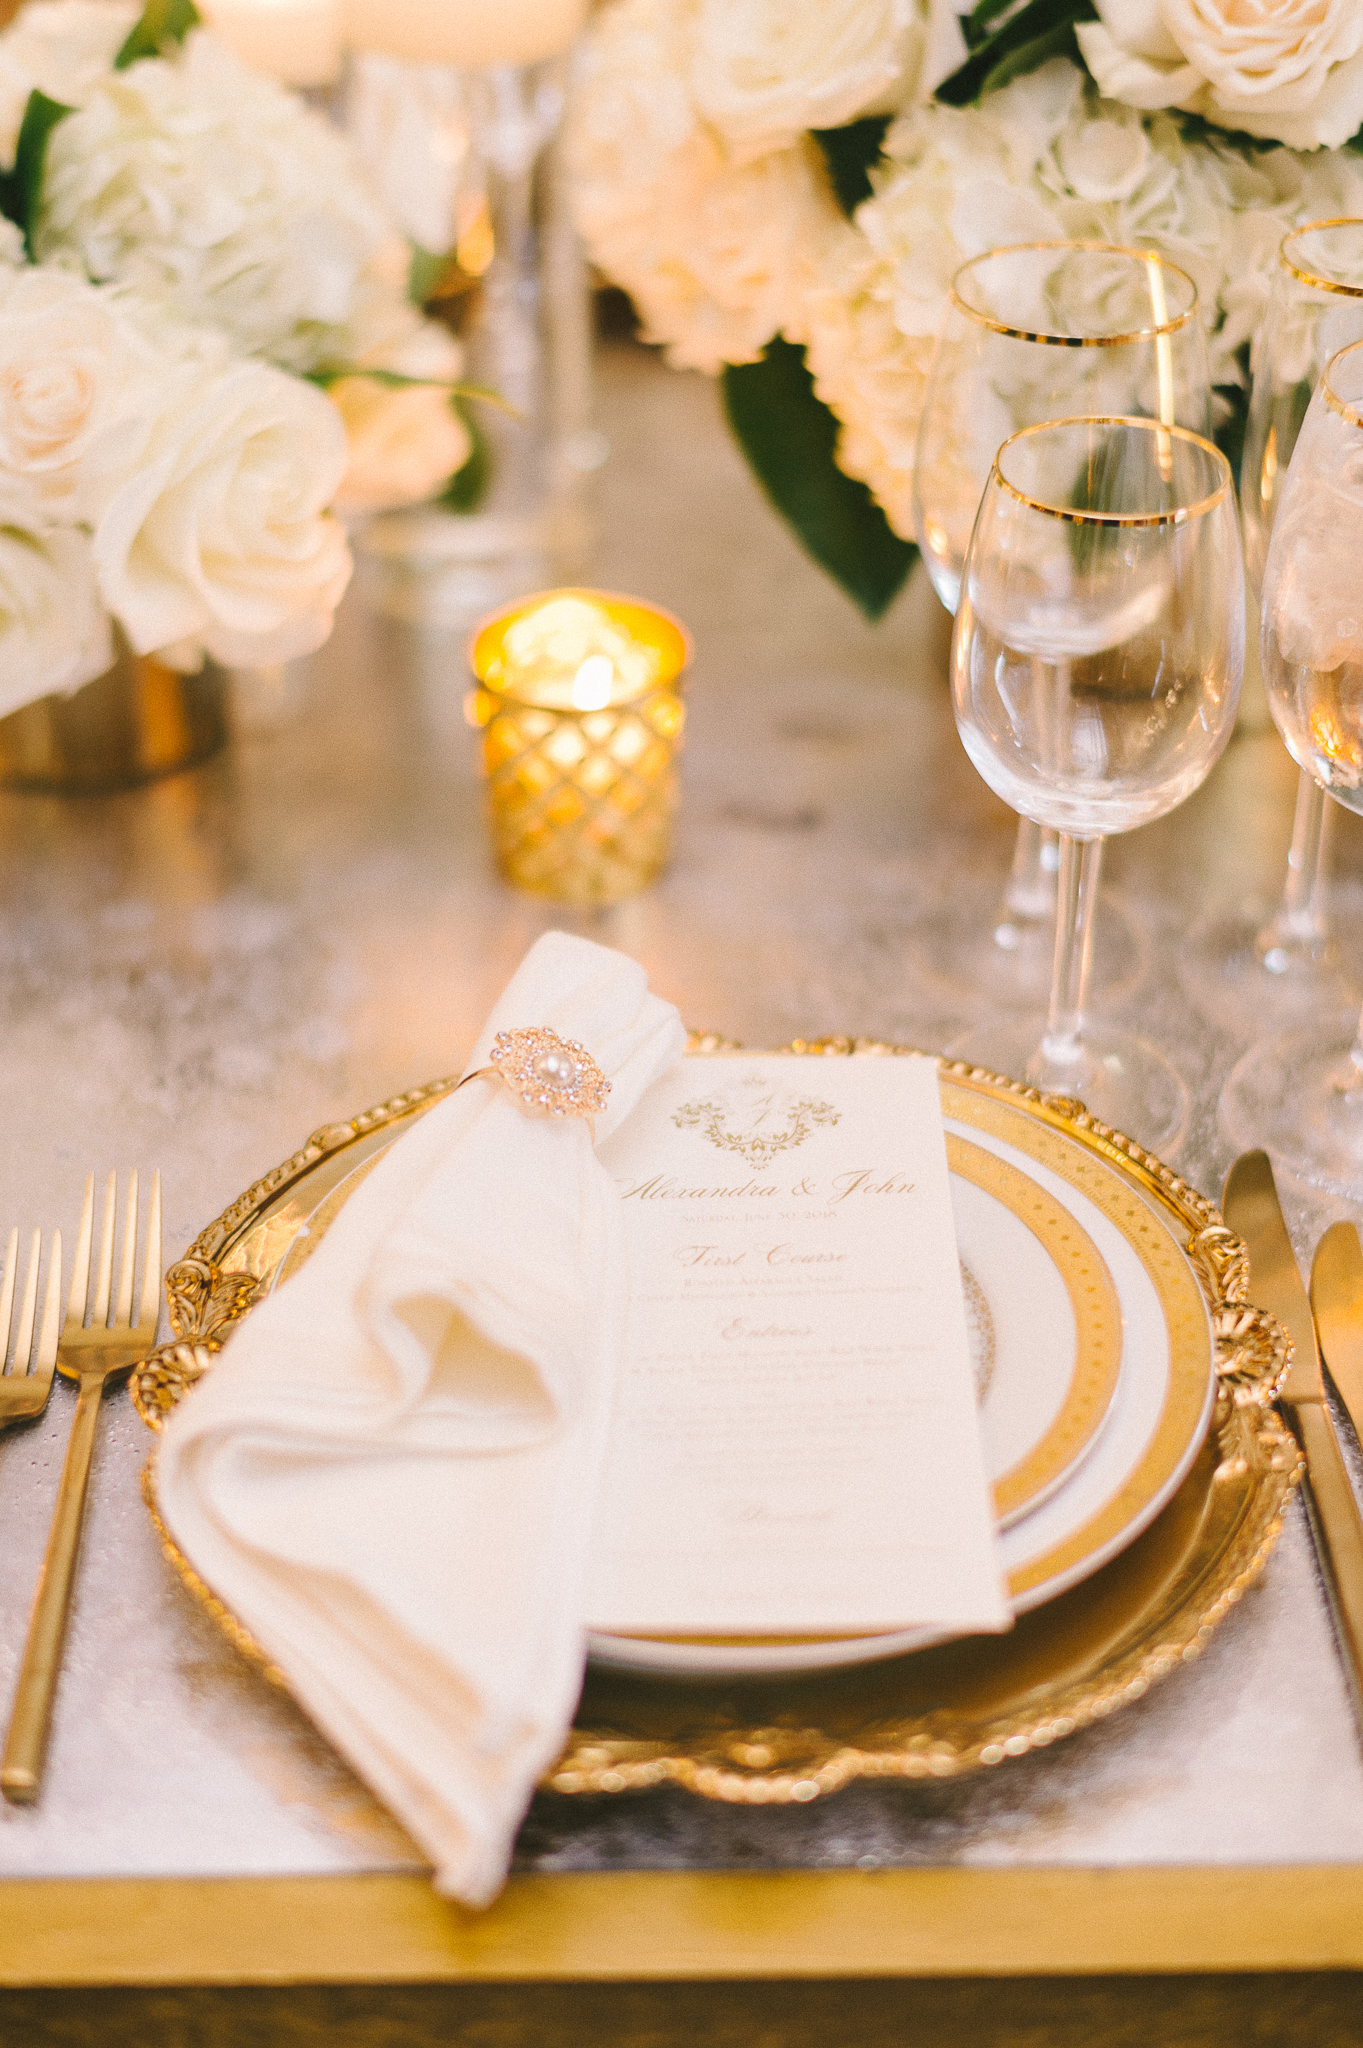 place setting with gold details